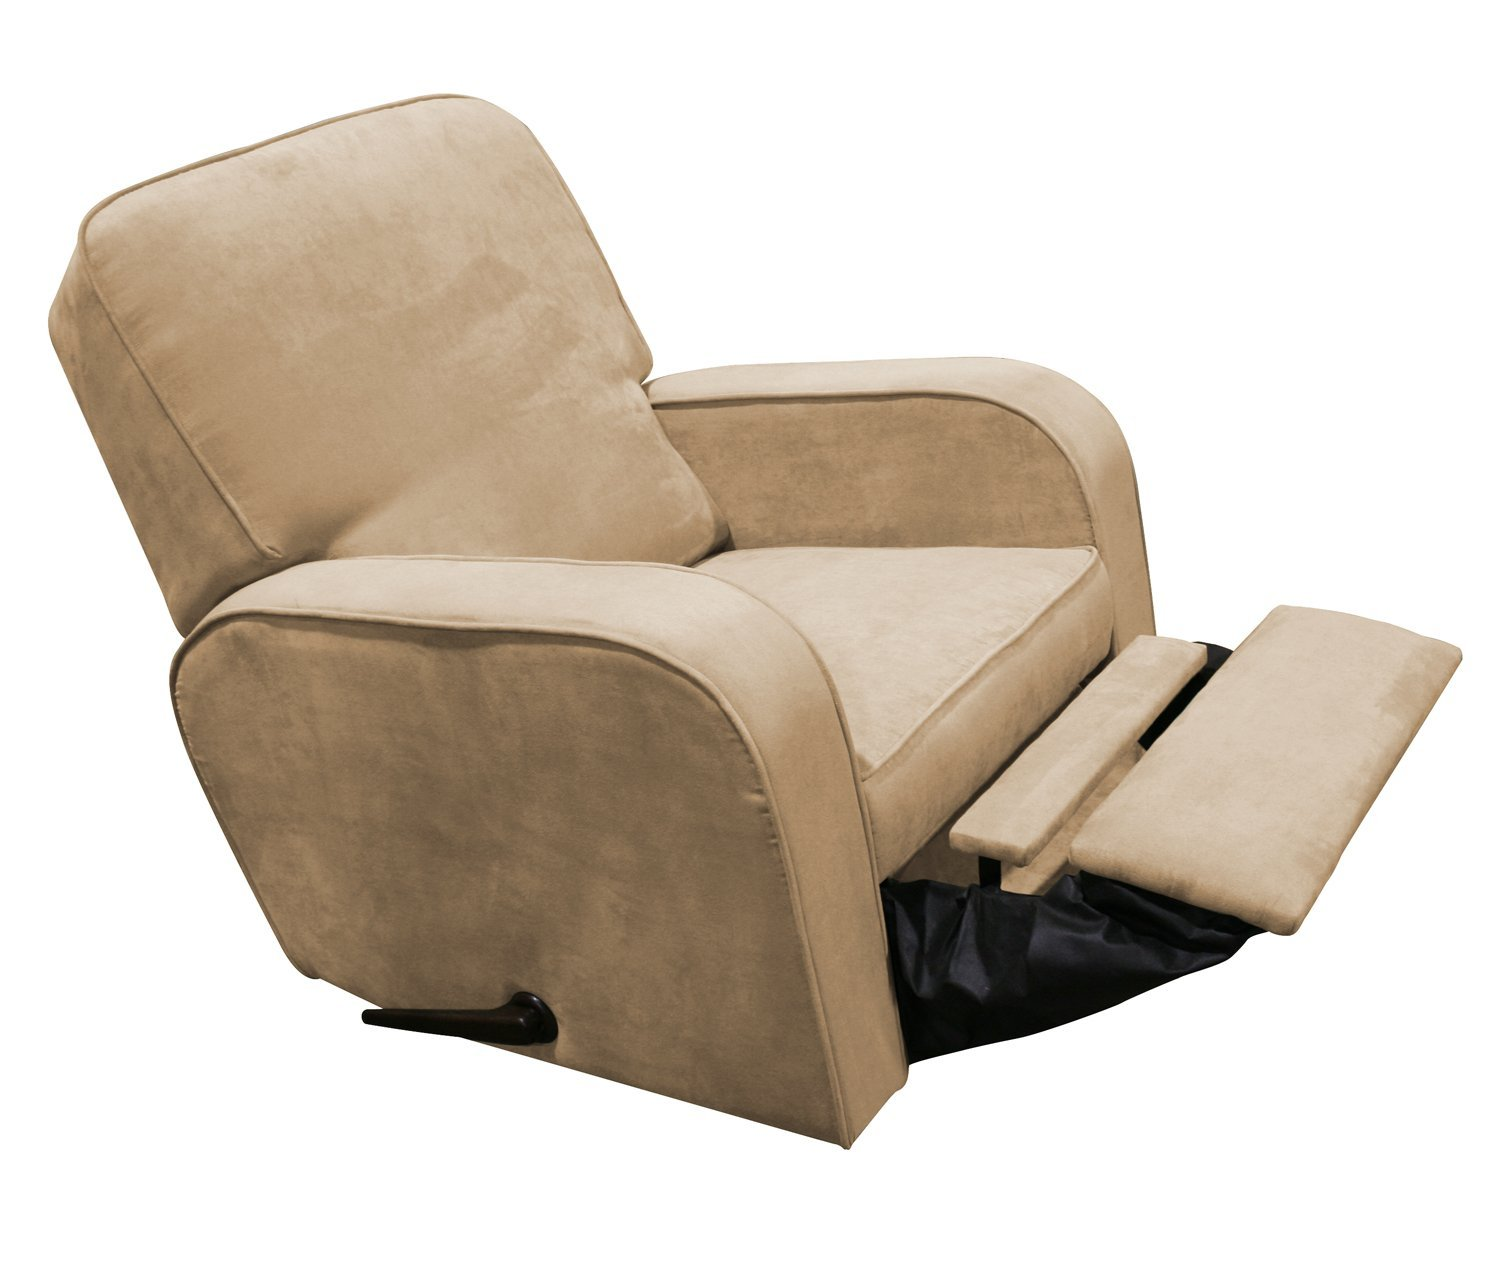 Image of: Brown Rocker Recliner Nursery